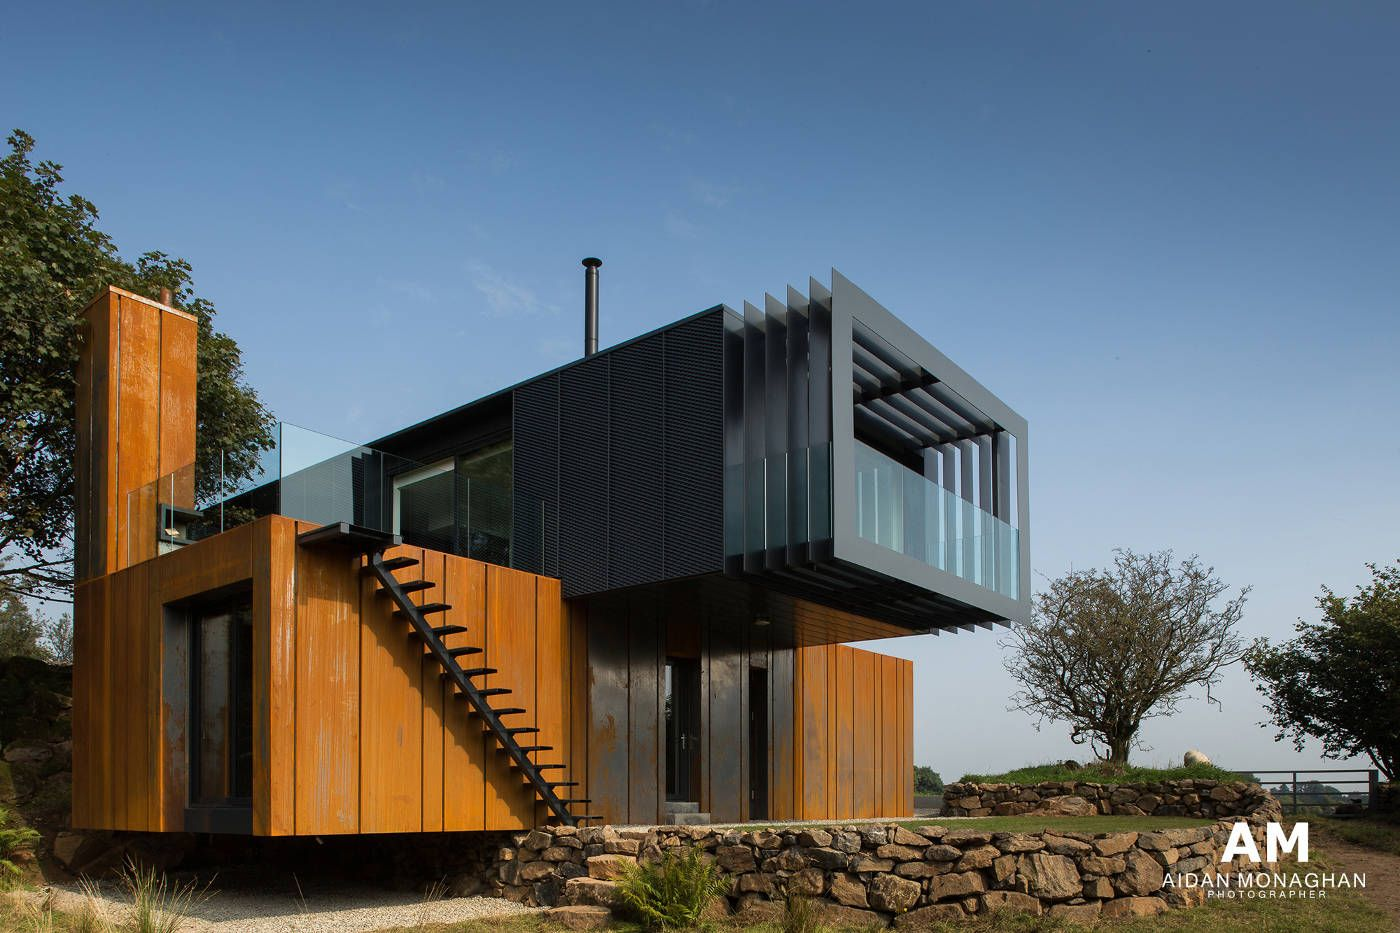 Best Images About Grand Designs On Pinterest Lake District - Designer shipping container homes